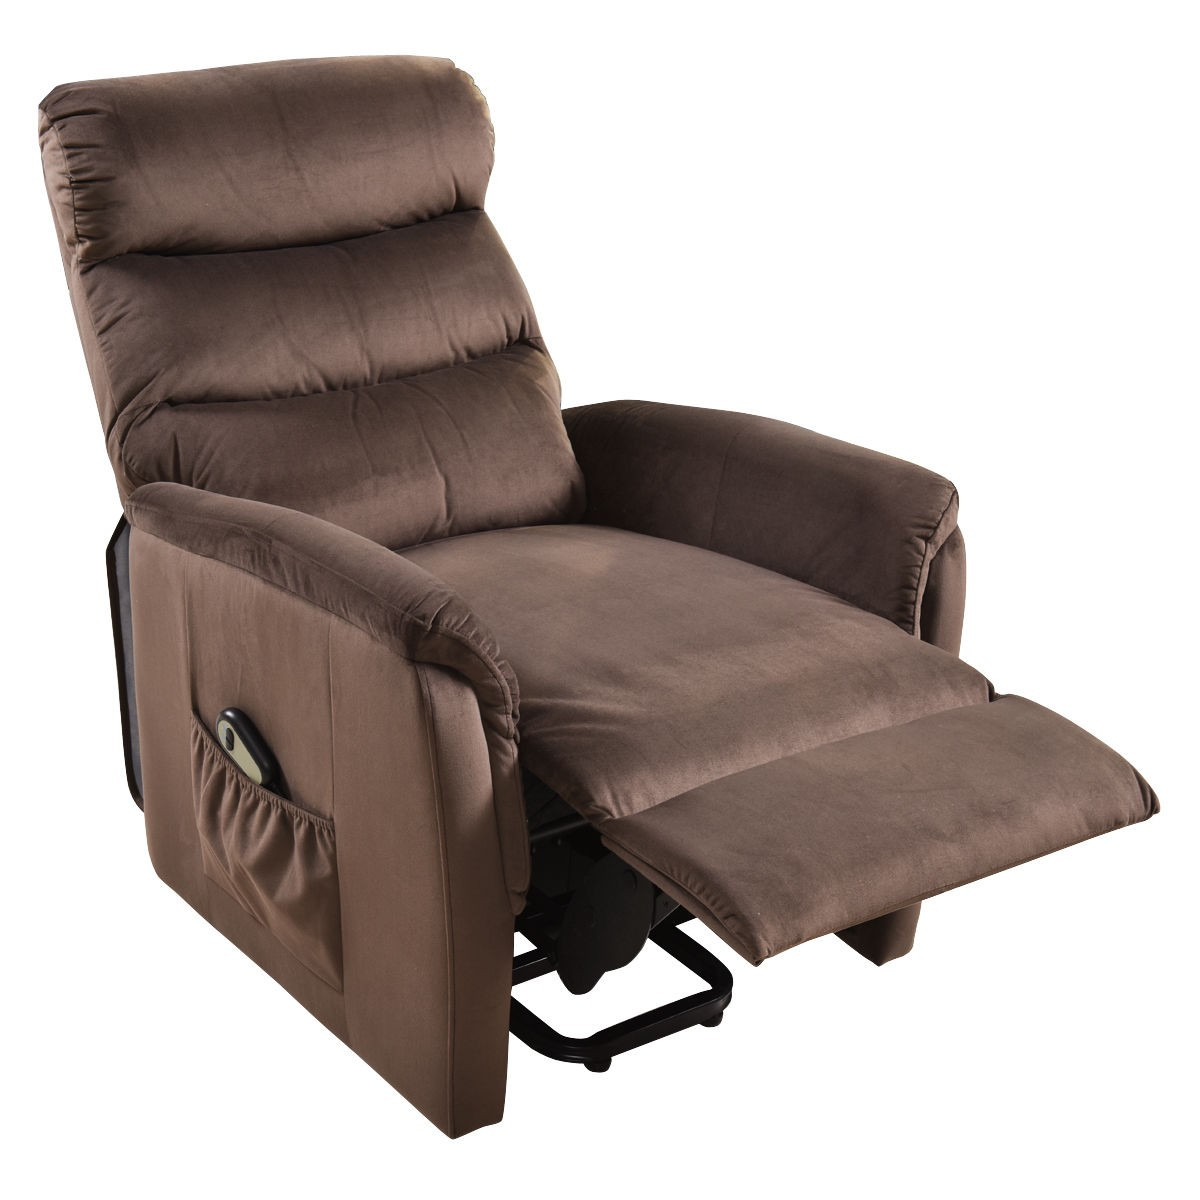 Modern Luxury Power Lift Chair Recliner Armchair Electric